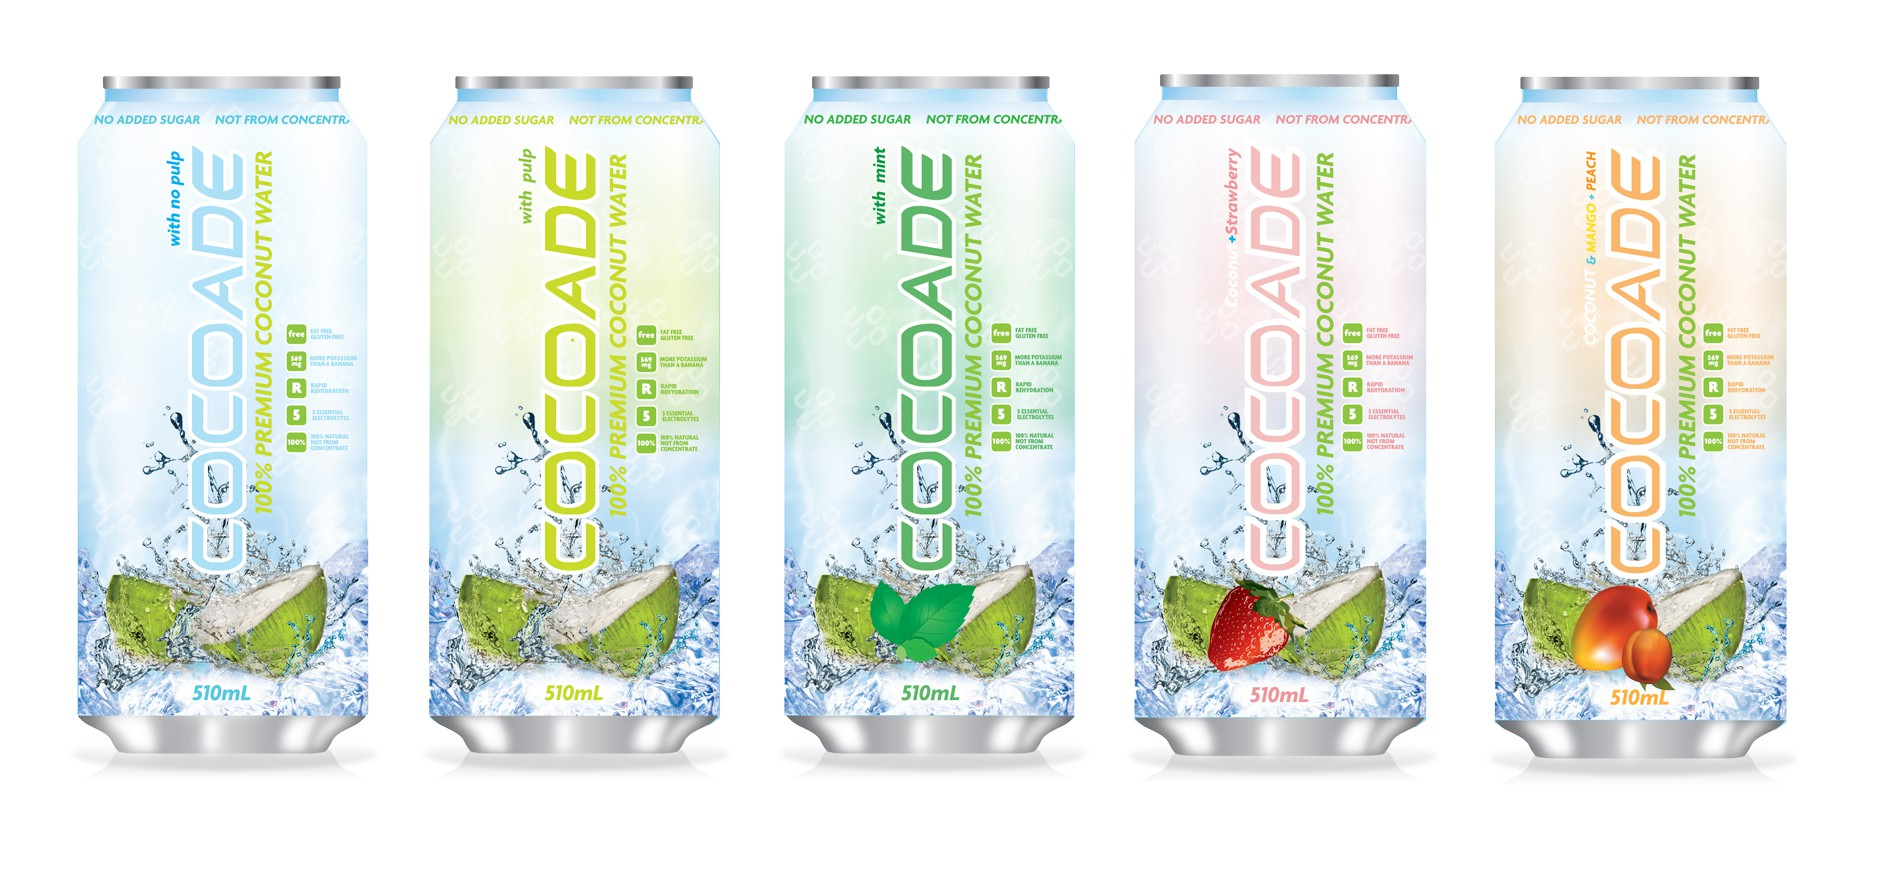 **Important & Help!** COCOADE (A New Sports Drink Label Design needed)